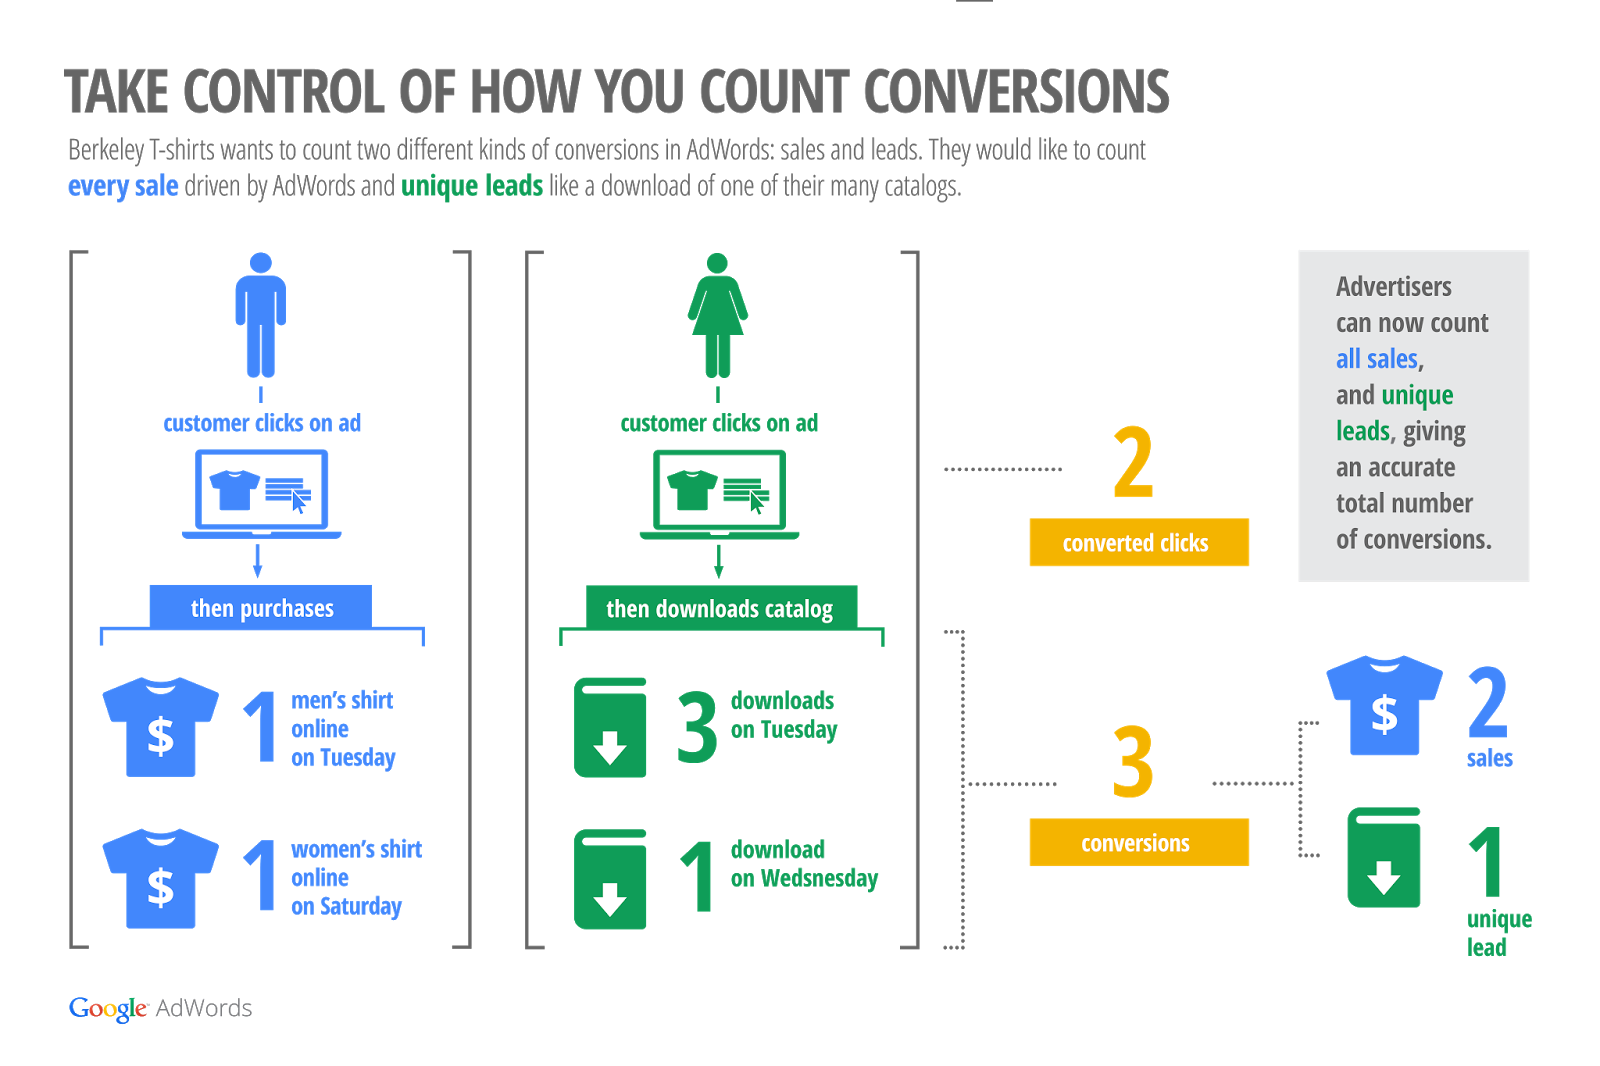 adwords conversions count change